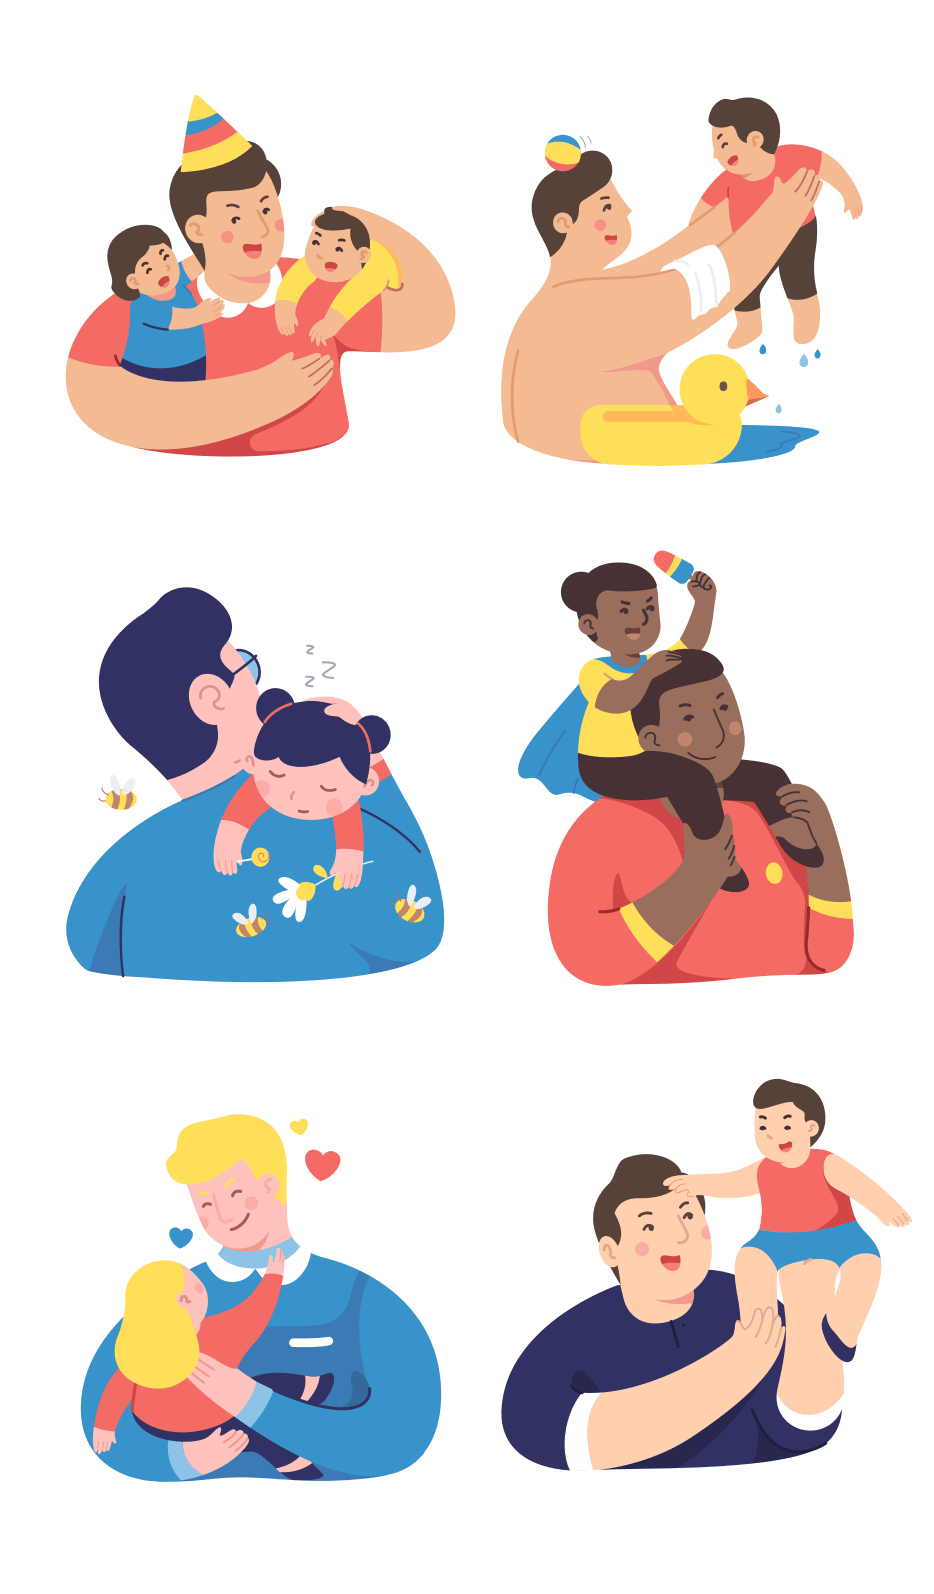 Fathers, diversity, culture, love, children, kids, family, dads, illustrations, daughters, sons, twins, baby, toddlers, child, bath time, swimming, hug, embrace, sleep, lifting up, birthday, party, fun, happy, love, summer